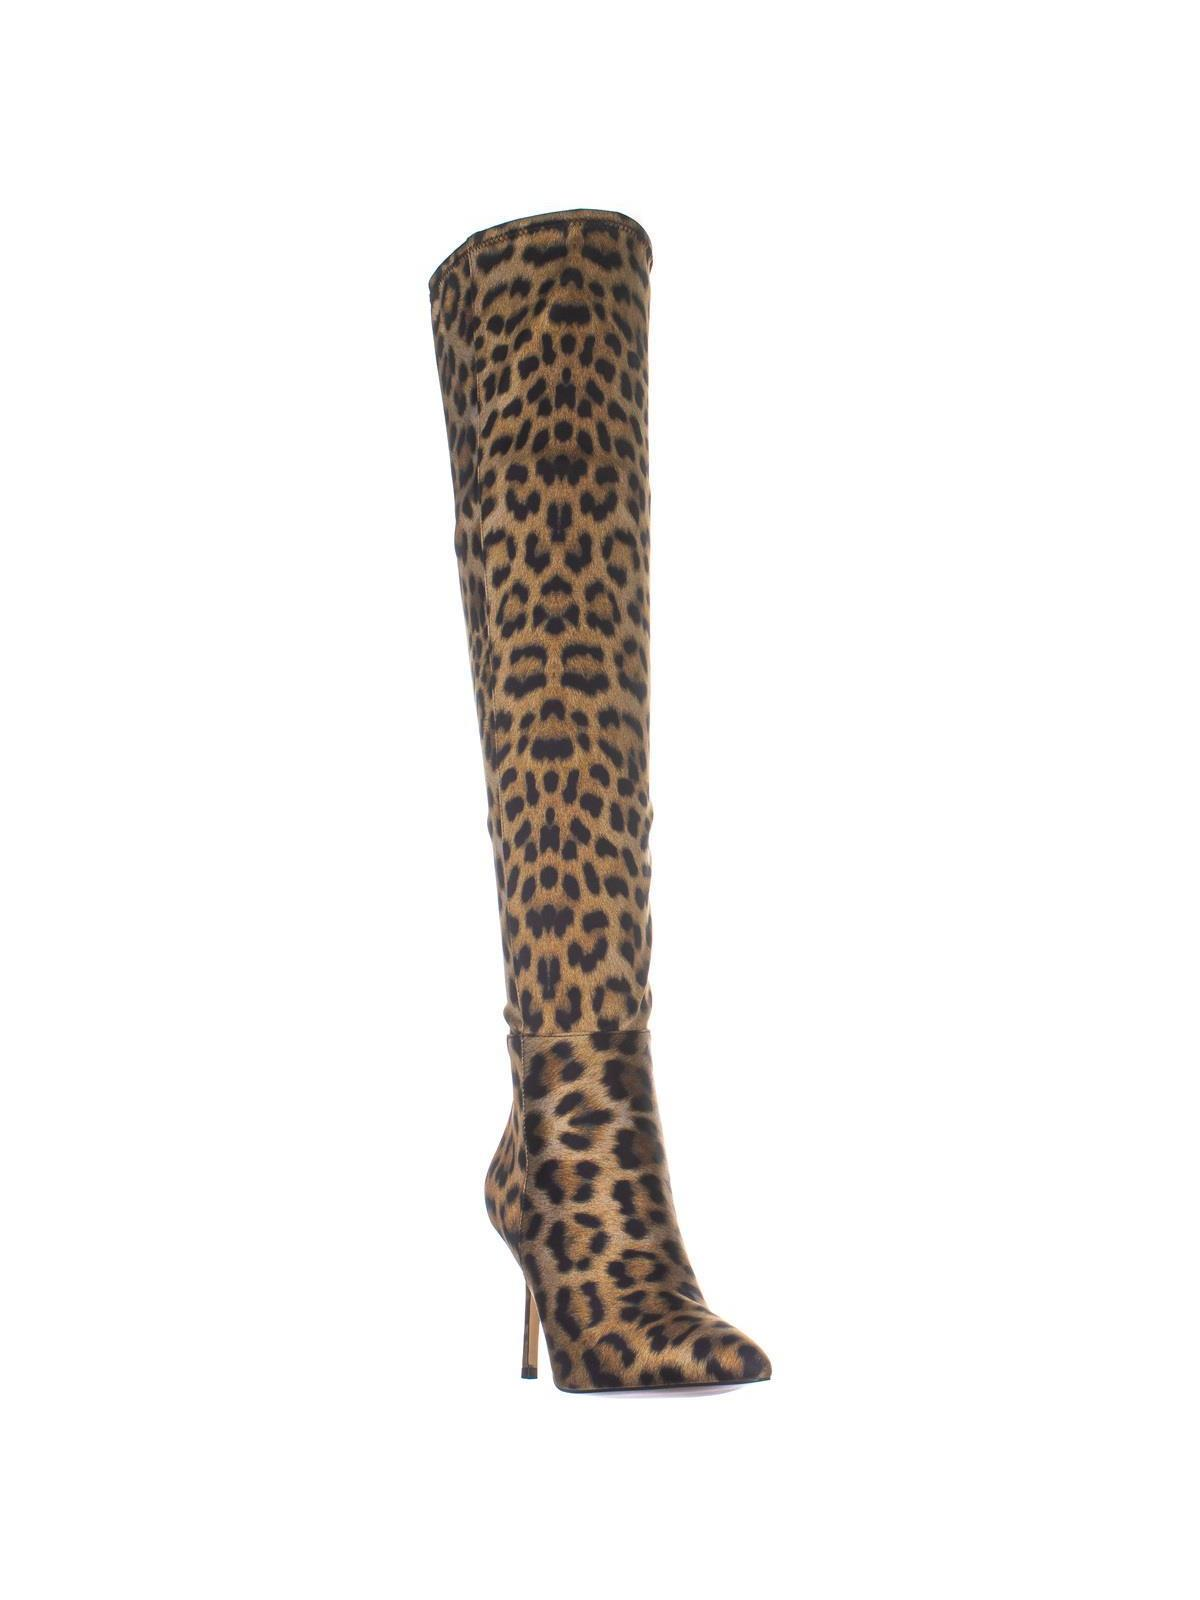 Katy Perry The Idolize Tall Boots